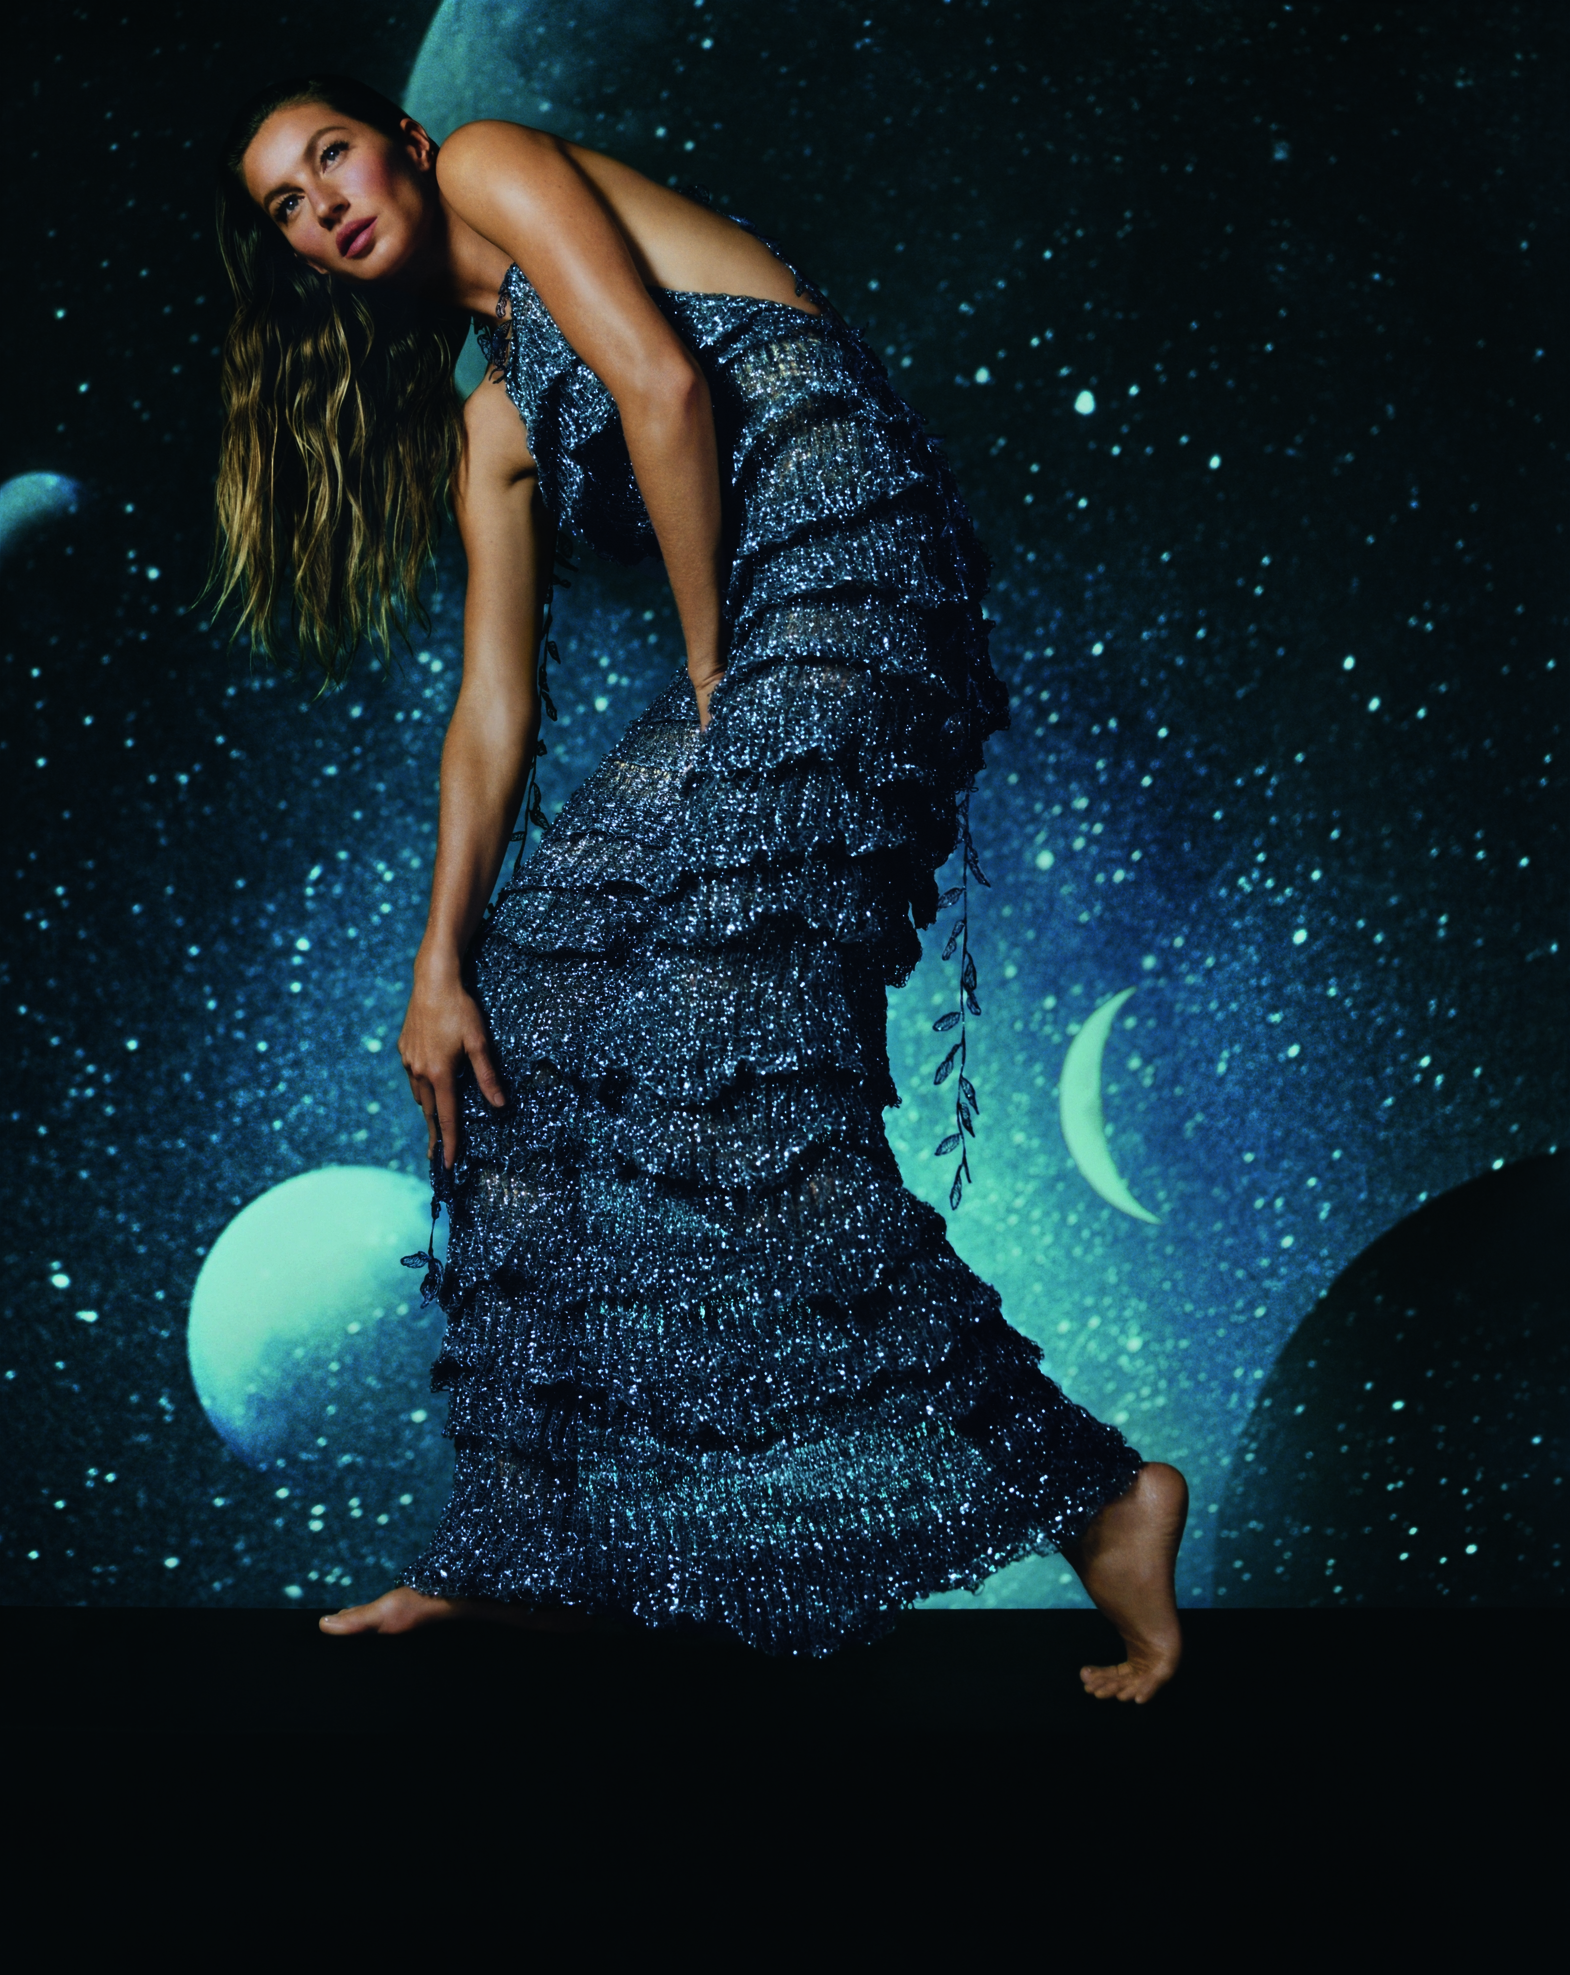 2073a8cf4138 Missoni Release S S 2019 Campaign with Gisele Büdchen and Tamino Amir  Moharam Fouad